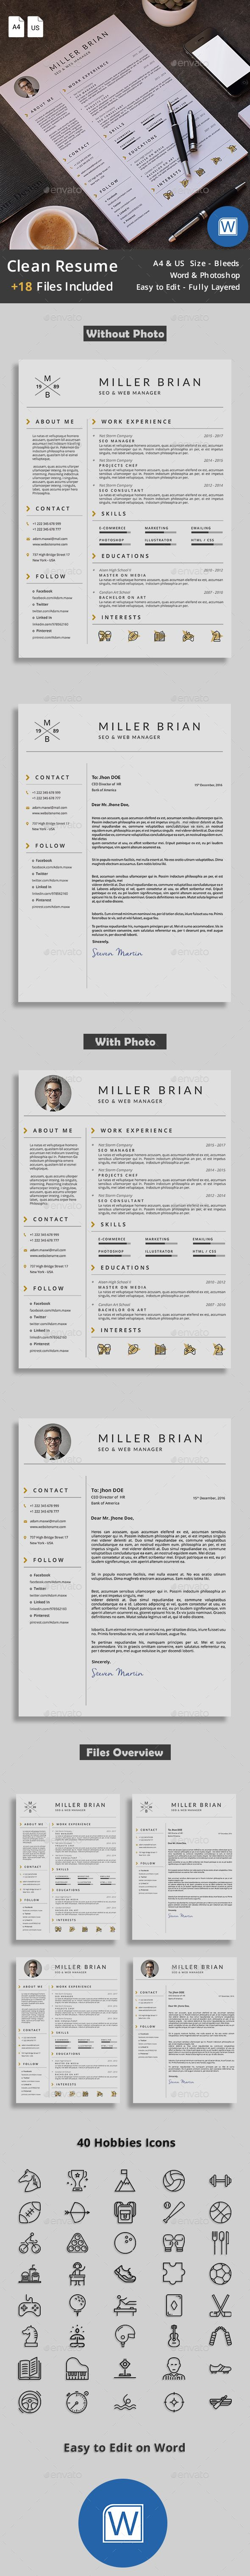 Resume - #Resumes #Stationery Download here: https://graphicriver.net/item/resume/18518640?ref=alena994